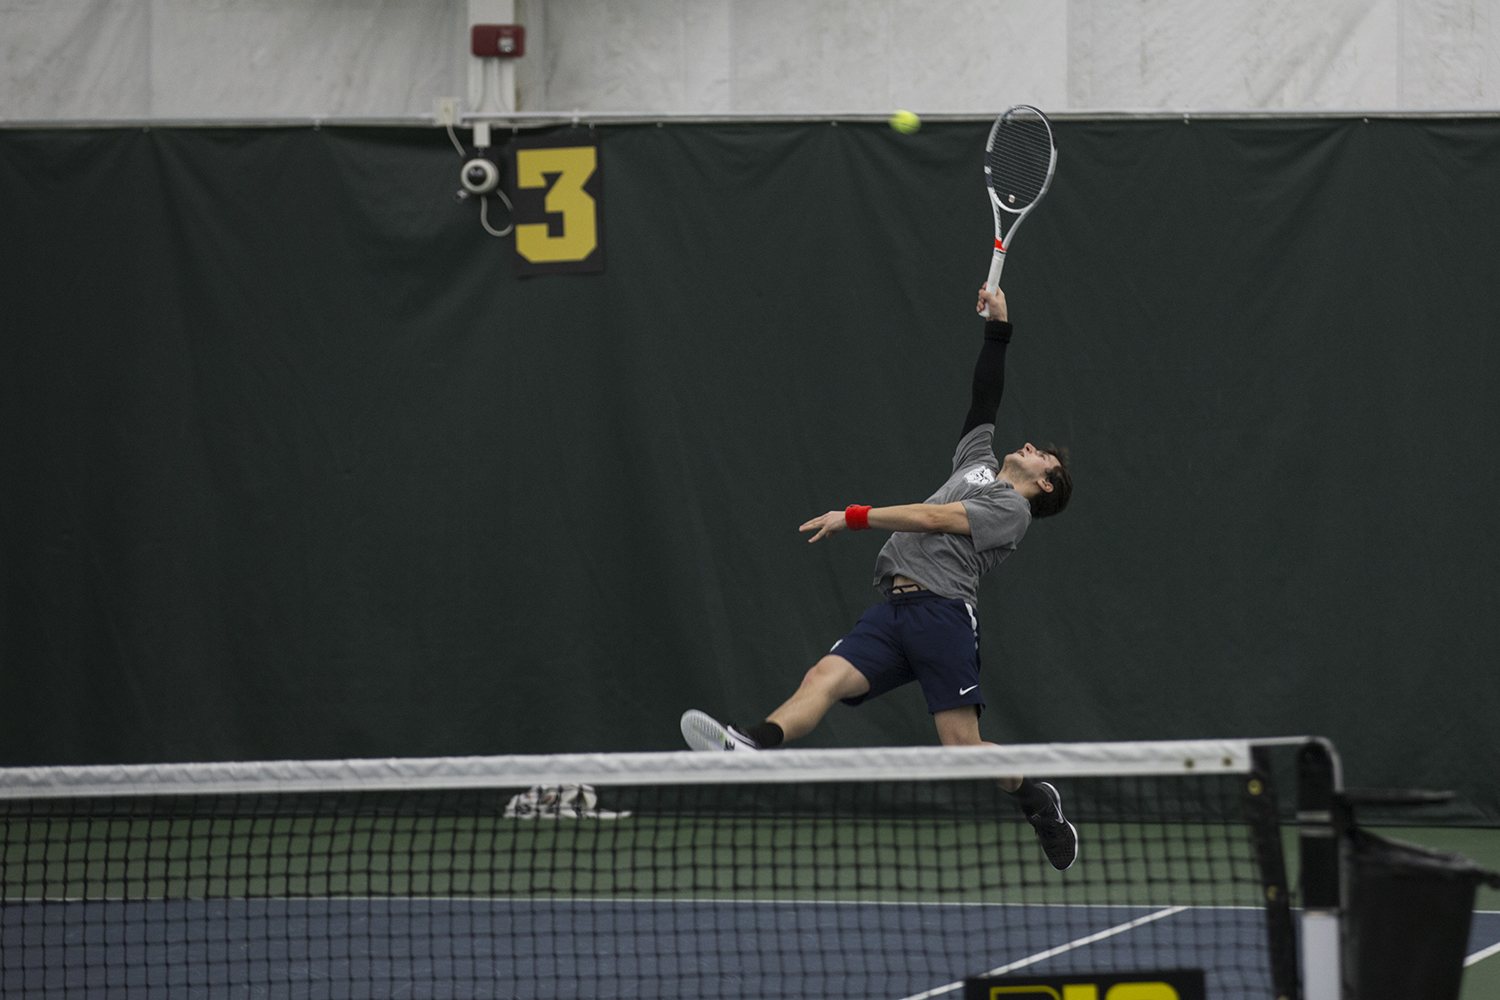 Butler%27s+Mason+Dragos+reaches+back+to+return+a+ball+at+a+tennis+match+between+East+Tennessee+State+and+Butler.+The+Buccaneers+won+the+match+7-0.